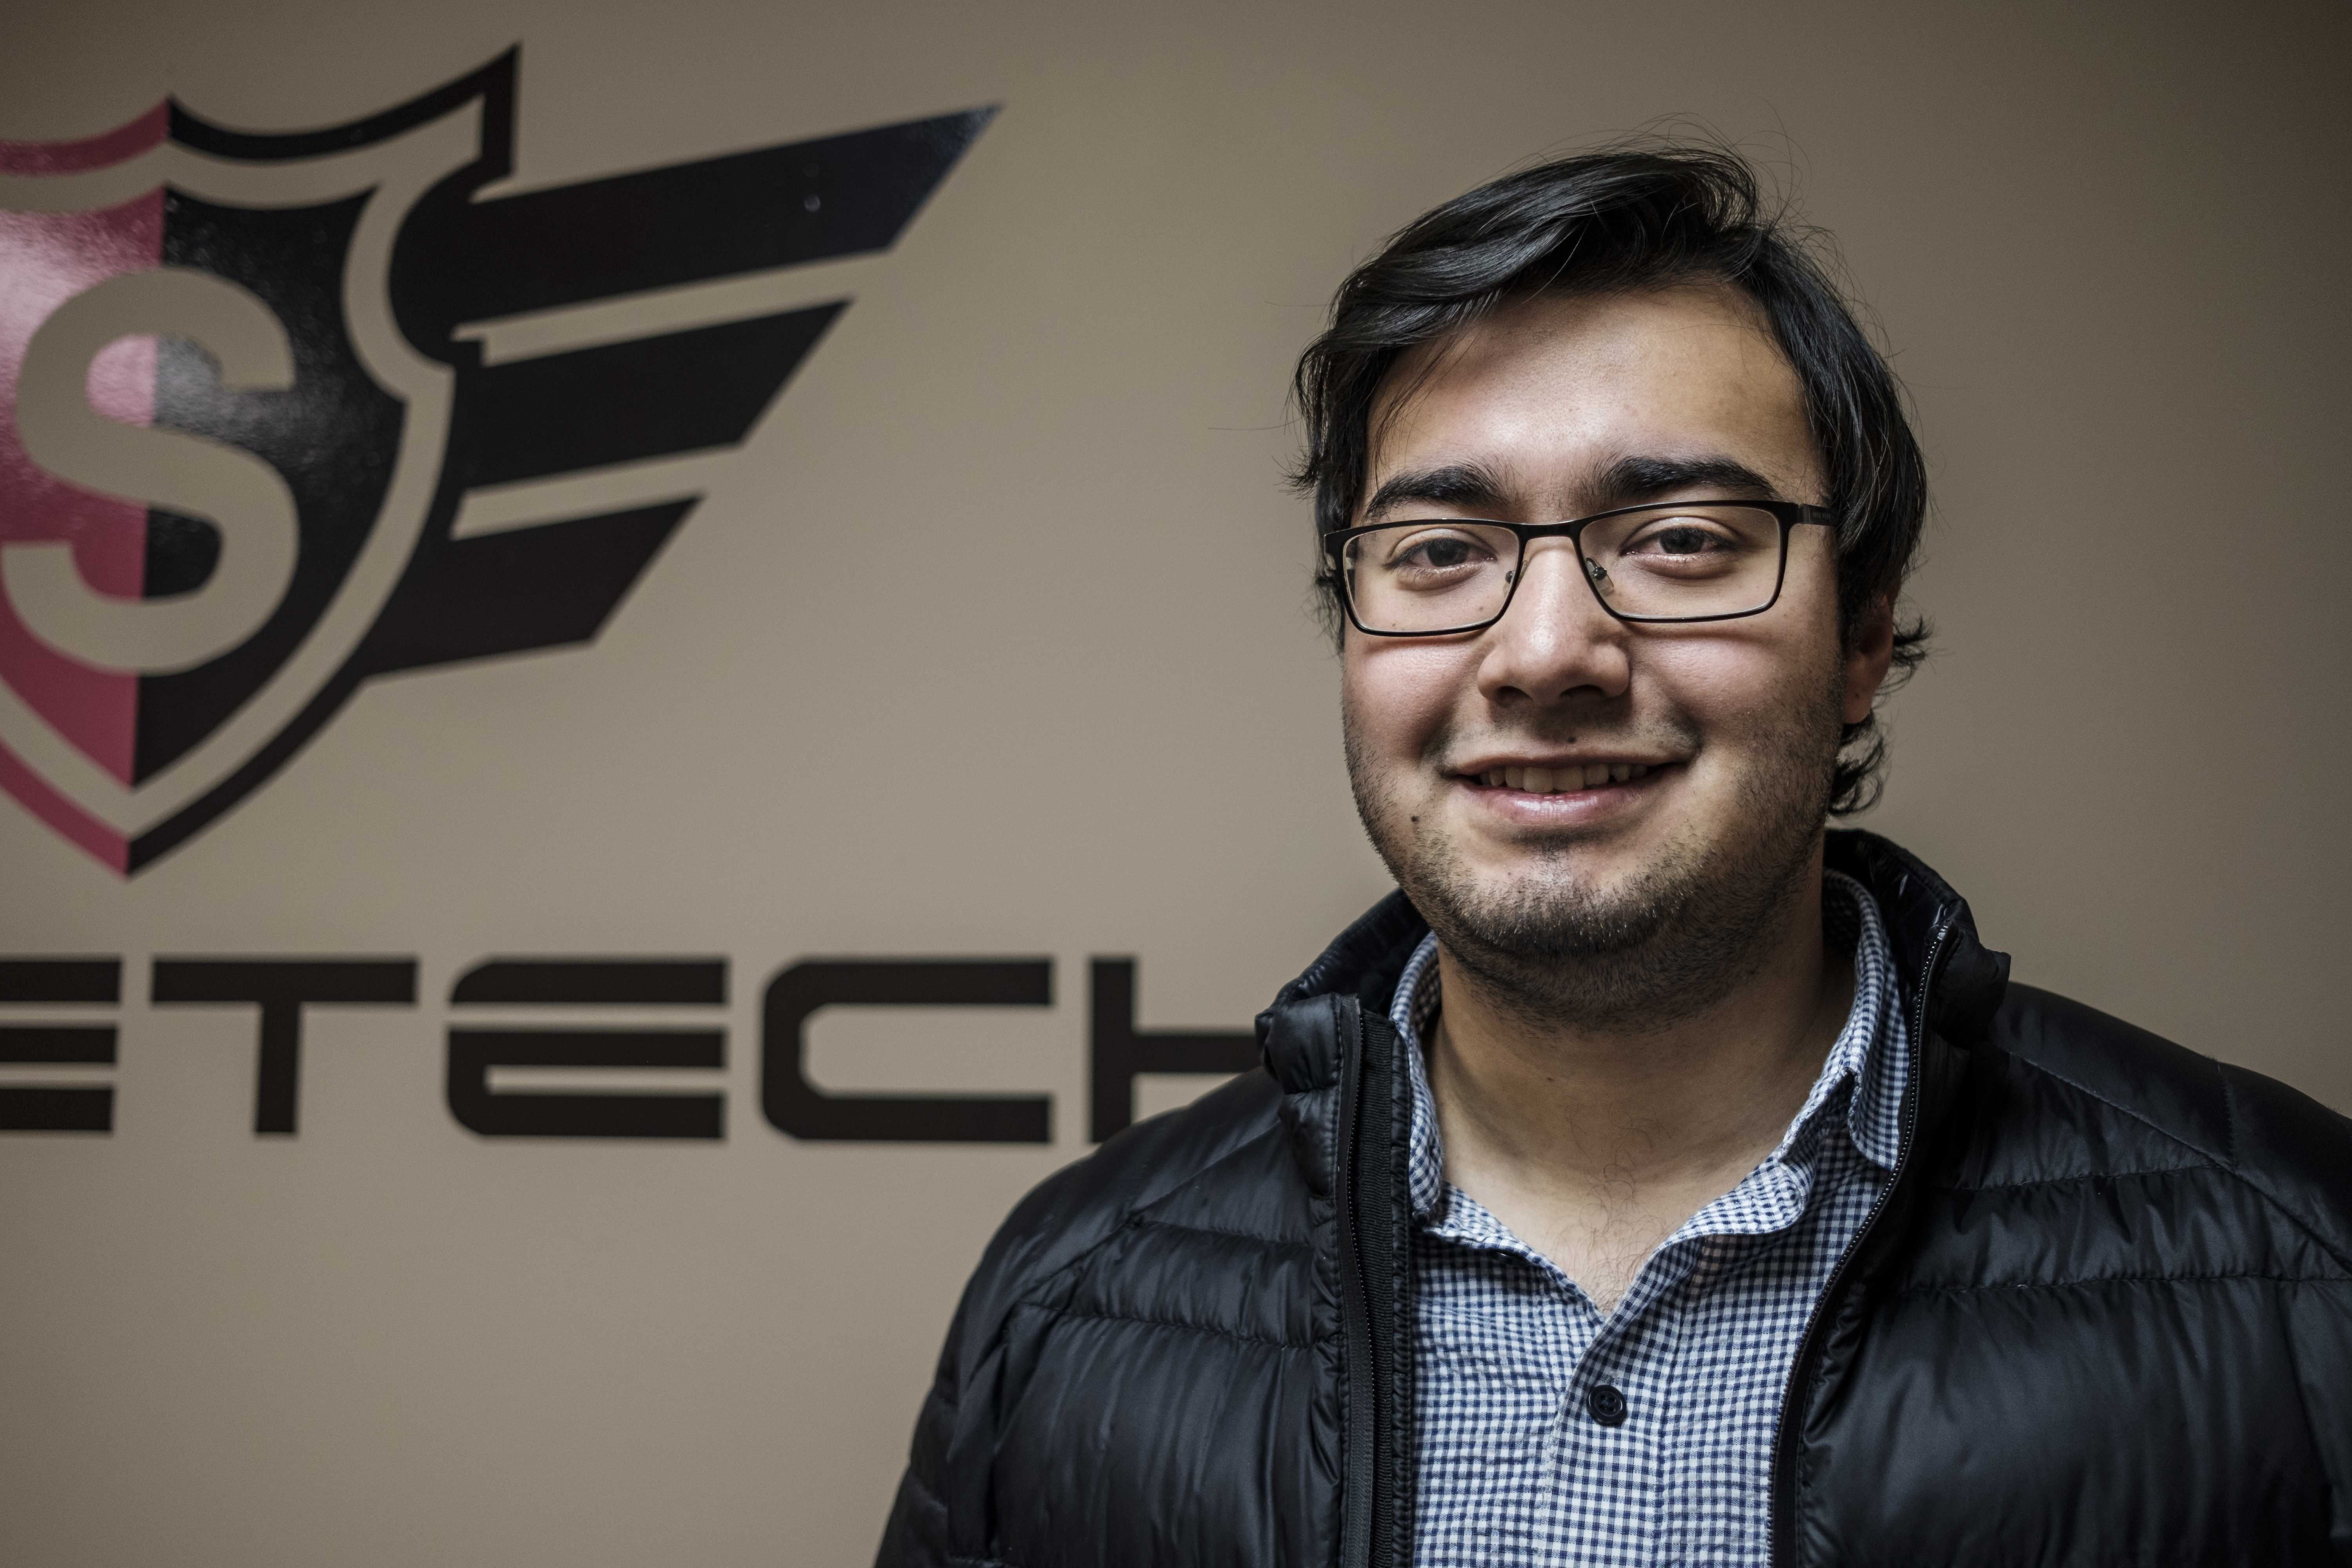 Co-Founder of SwineTech Abraham Espinoza poses for a portrait at Swine Tech's Cedar Rapids office on Wednesday Dec. 6, 2017. Espinoza and University of Iowa classmate Matthew Rooda founded SwineTech while students at the university. (Nick Rohlman/The Daily Iowan)